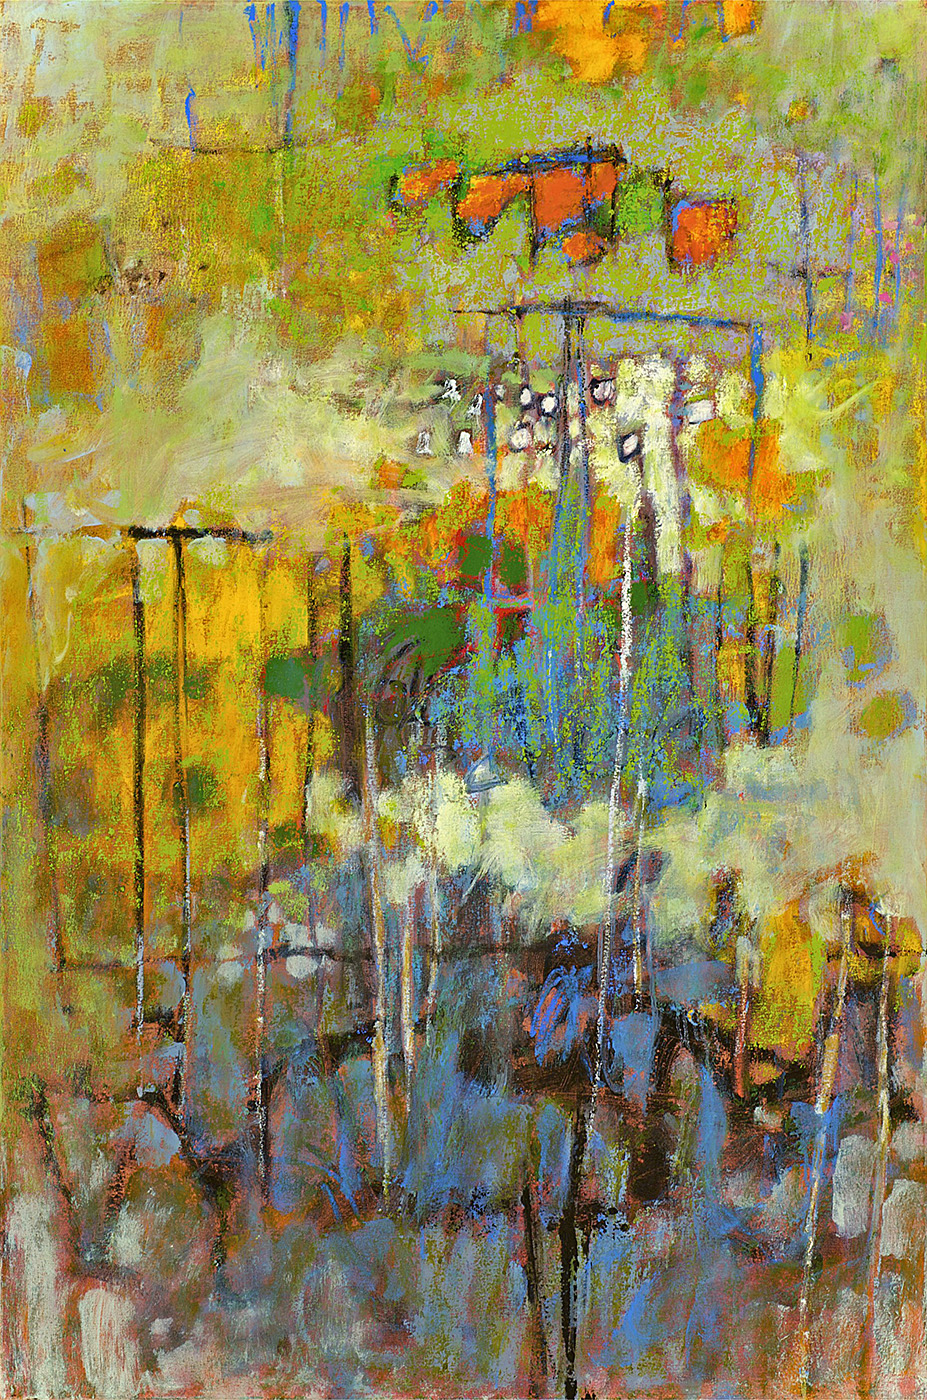 Infinite Garden   | oil on canvas | 48 x 32"